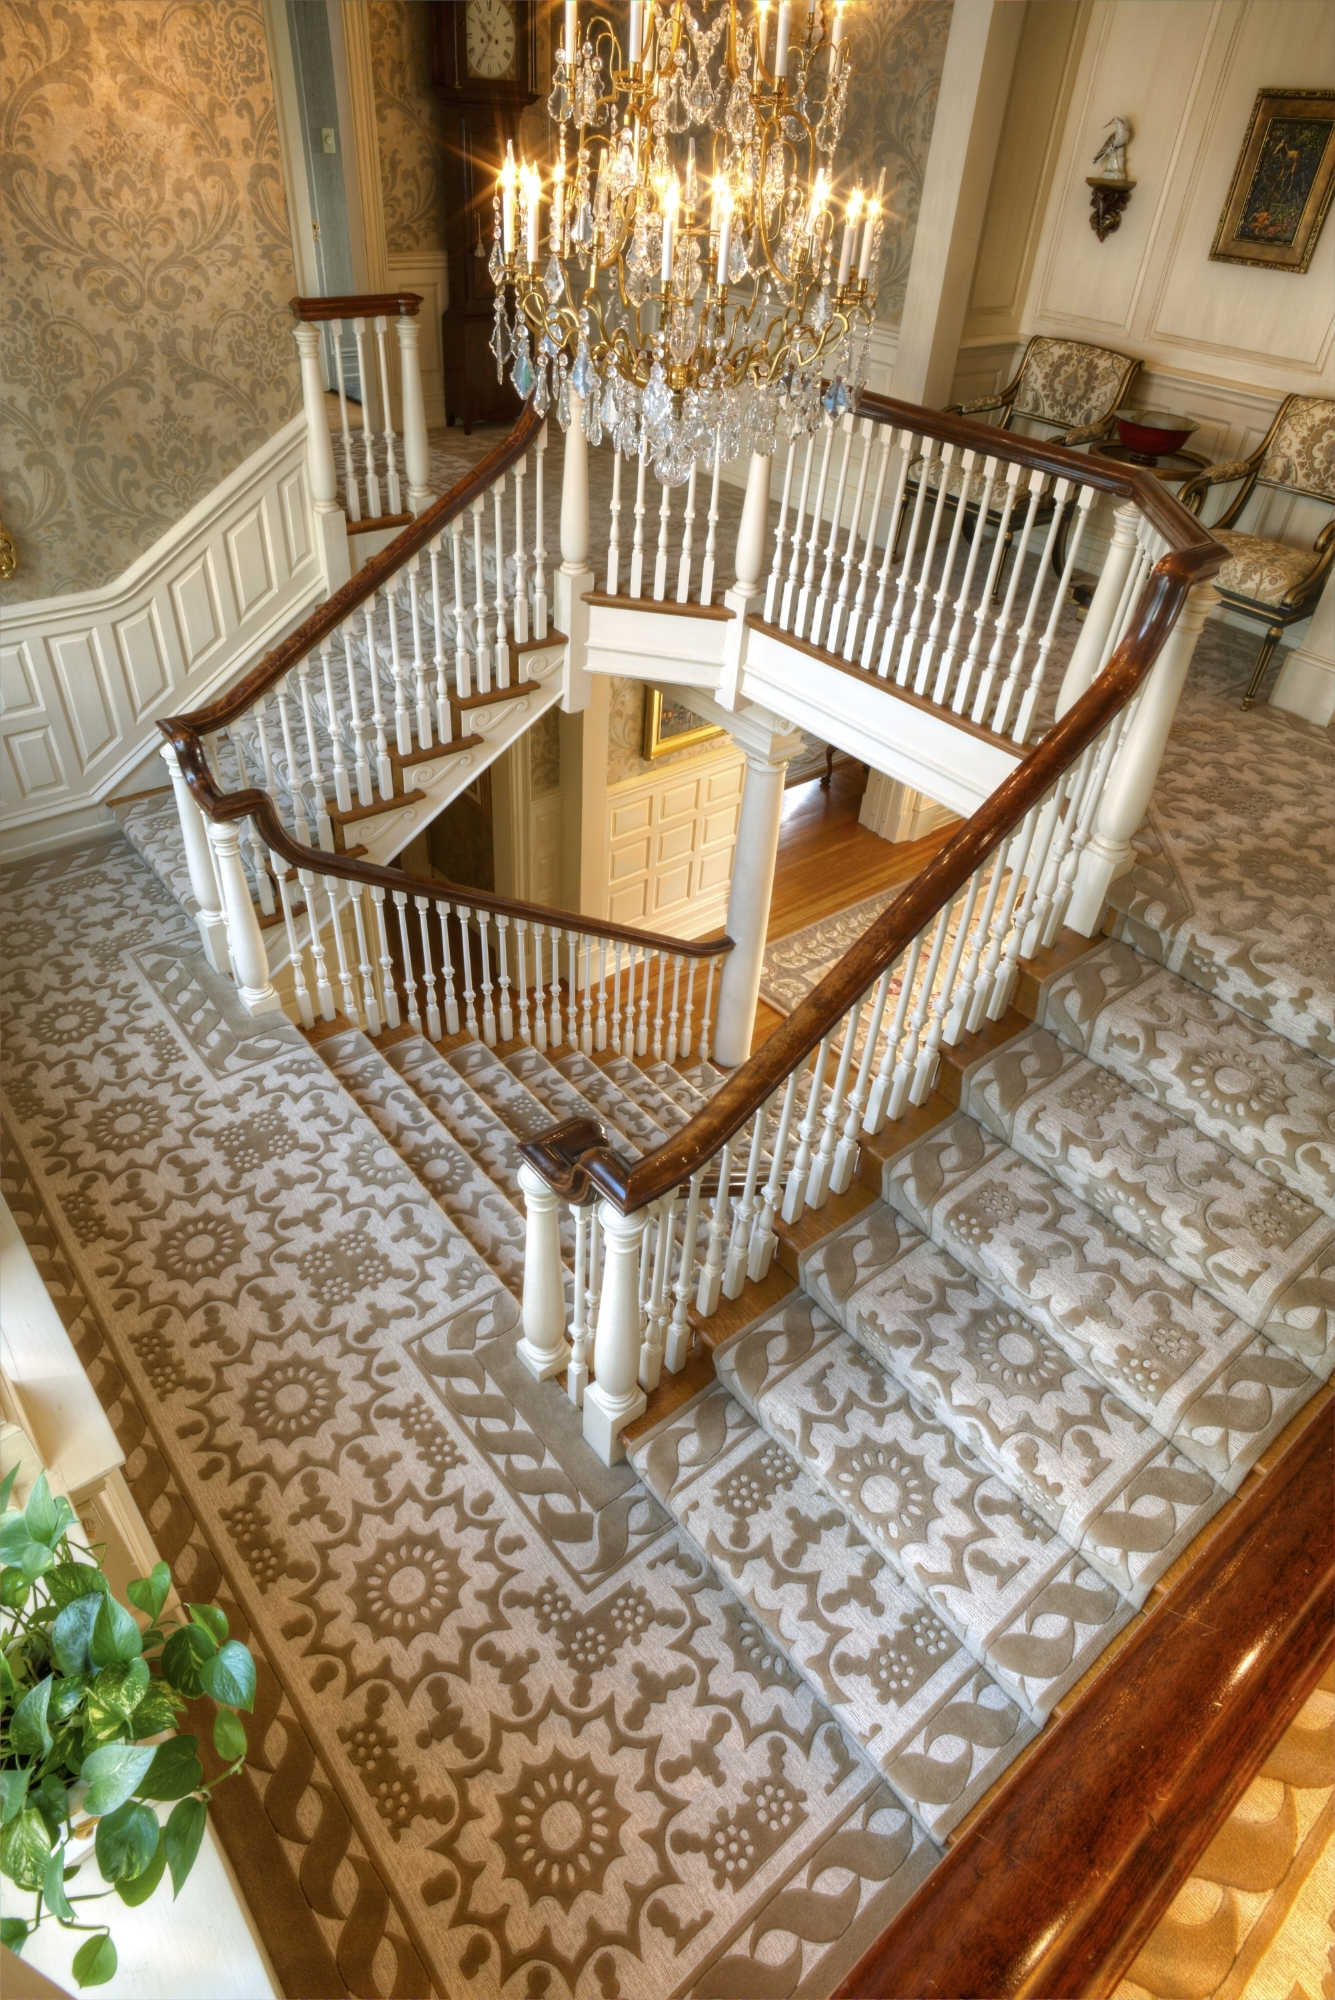 Lang Carpet Portfolio Of Our Work Gallery Page — Lang Carpet | Carpeting For Stairs Residential | Spiral Stair | Communal Stairway | Commercial | Houzz | Waterfall Stair